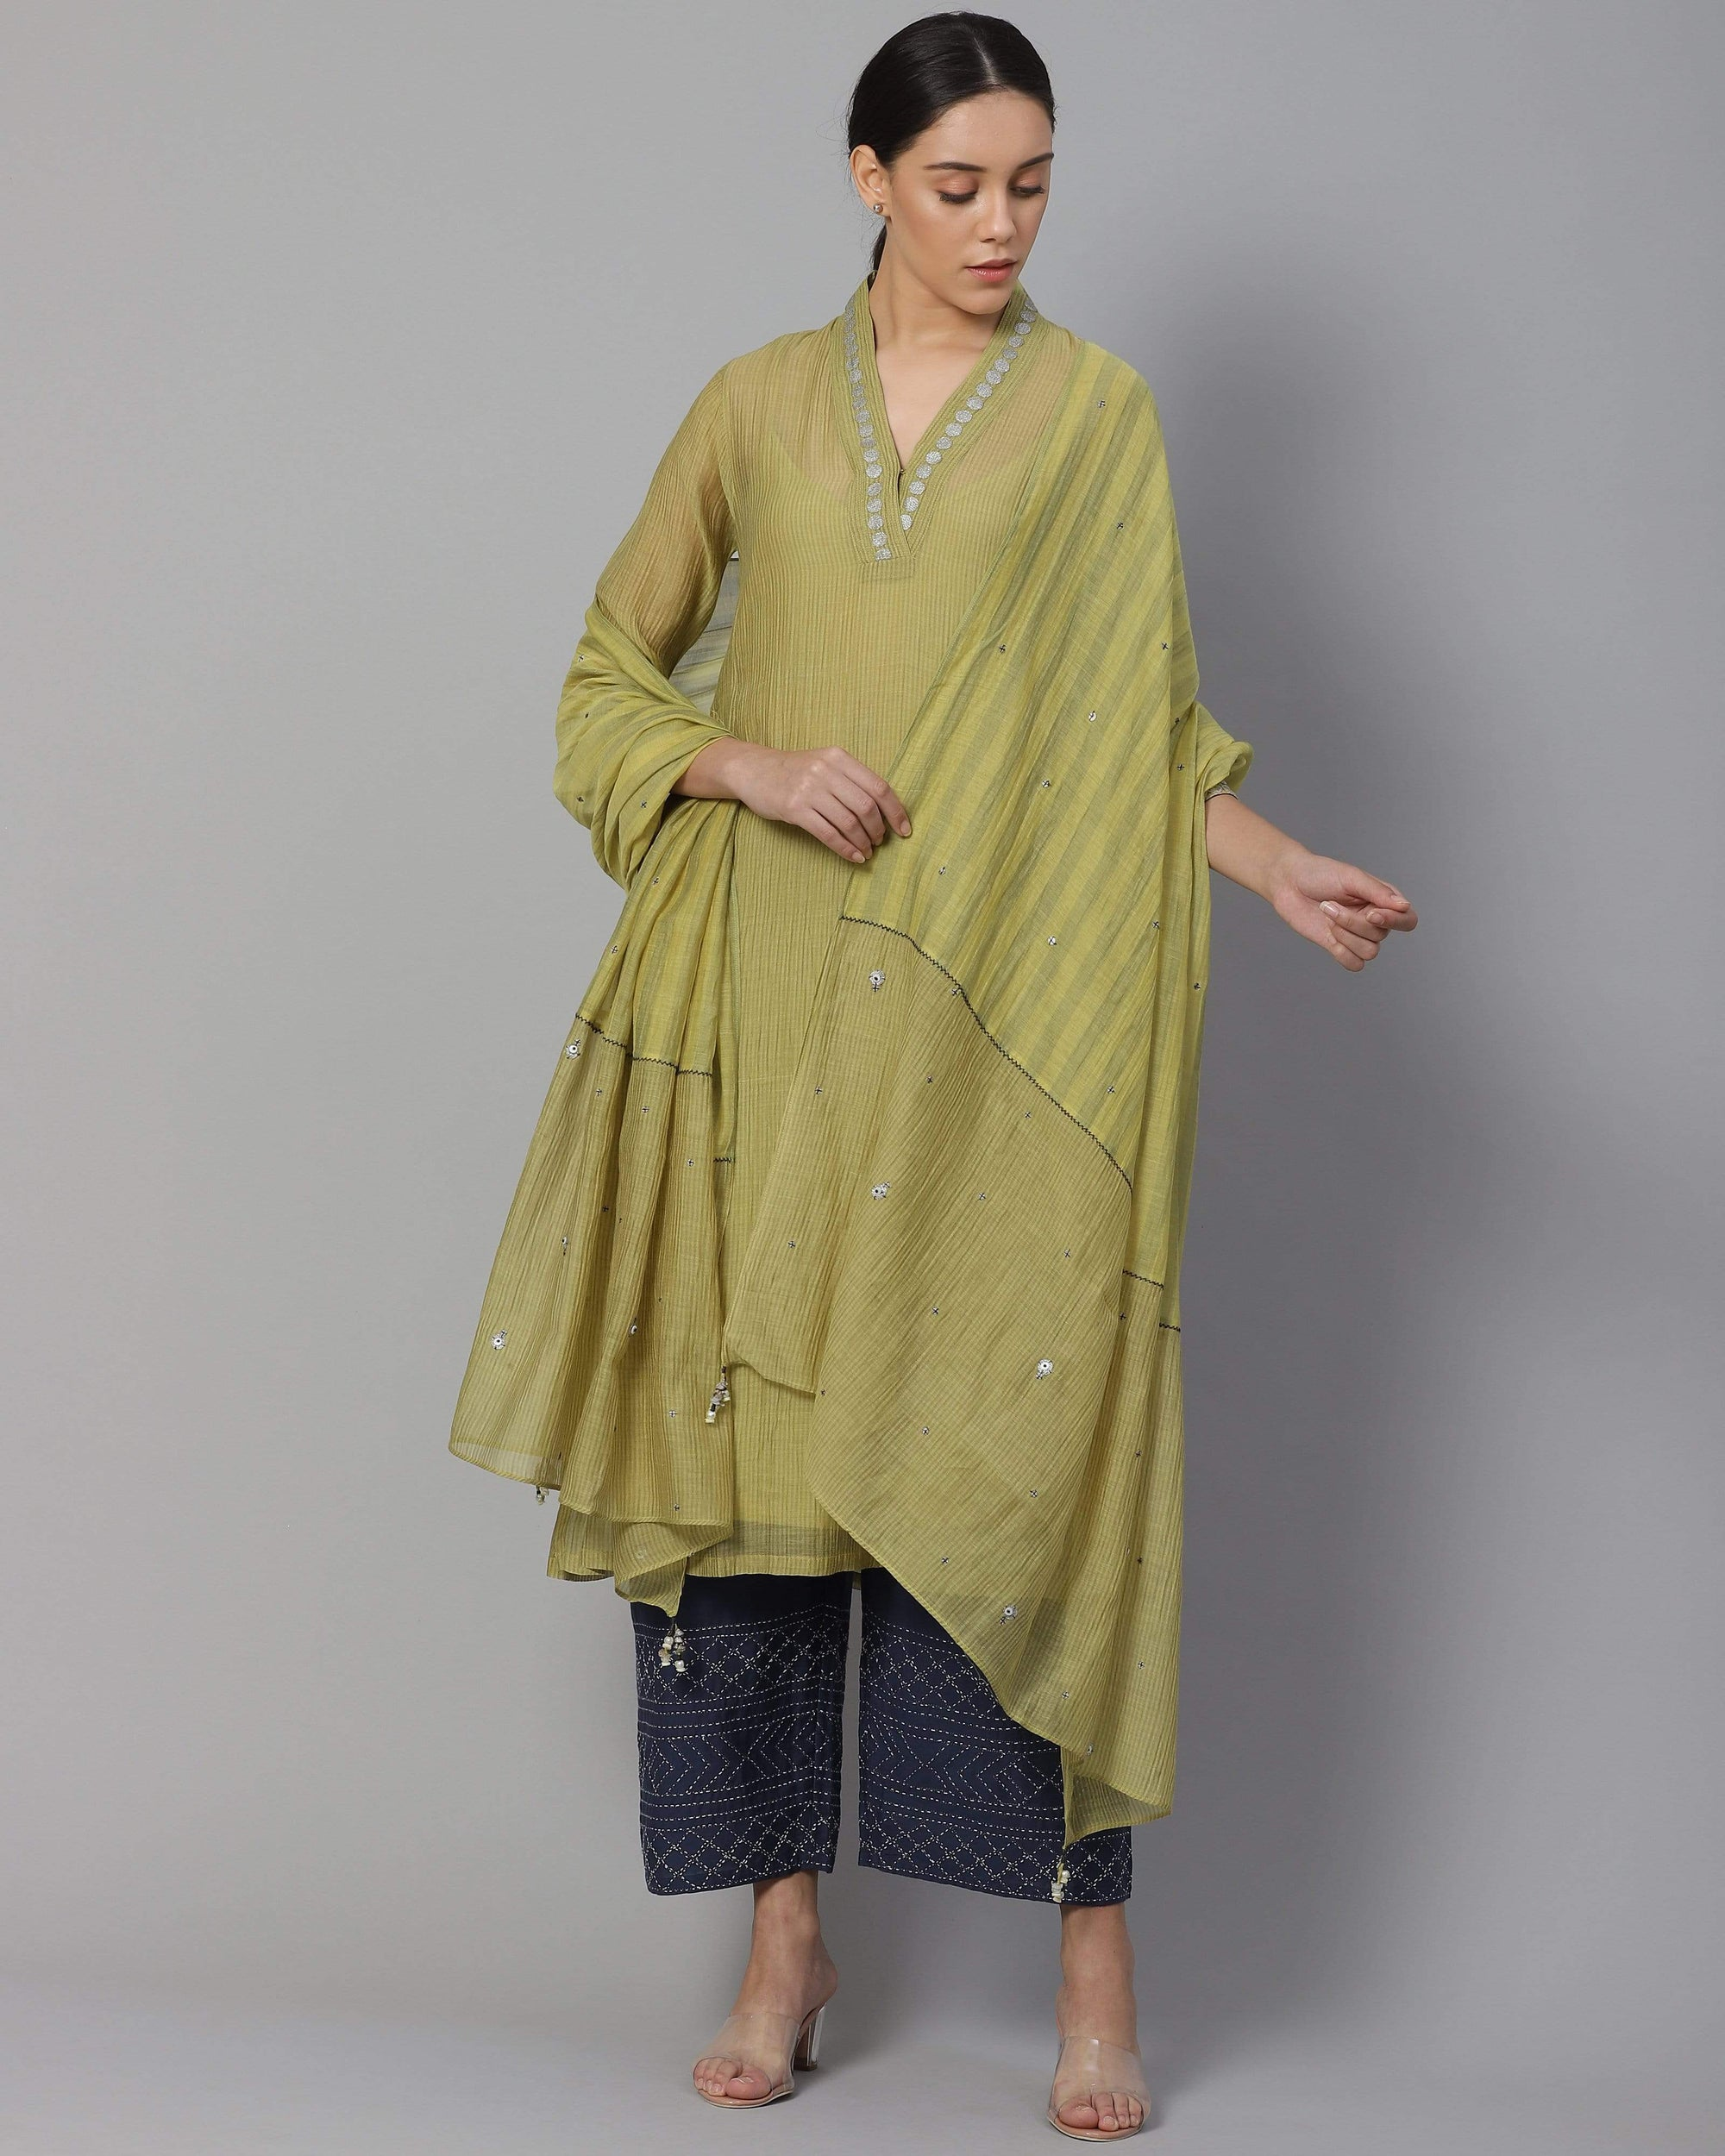 Shades of India Kurtas Penley green chanderi kurta